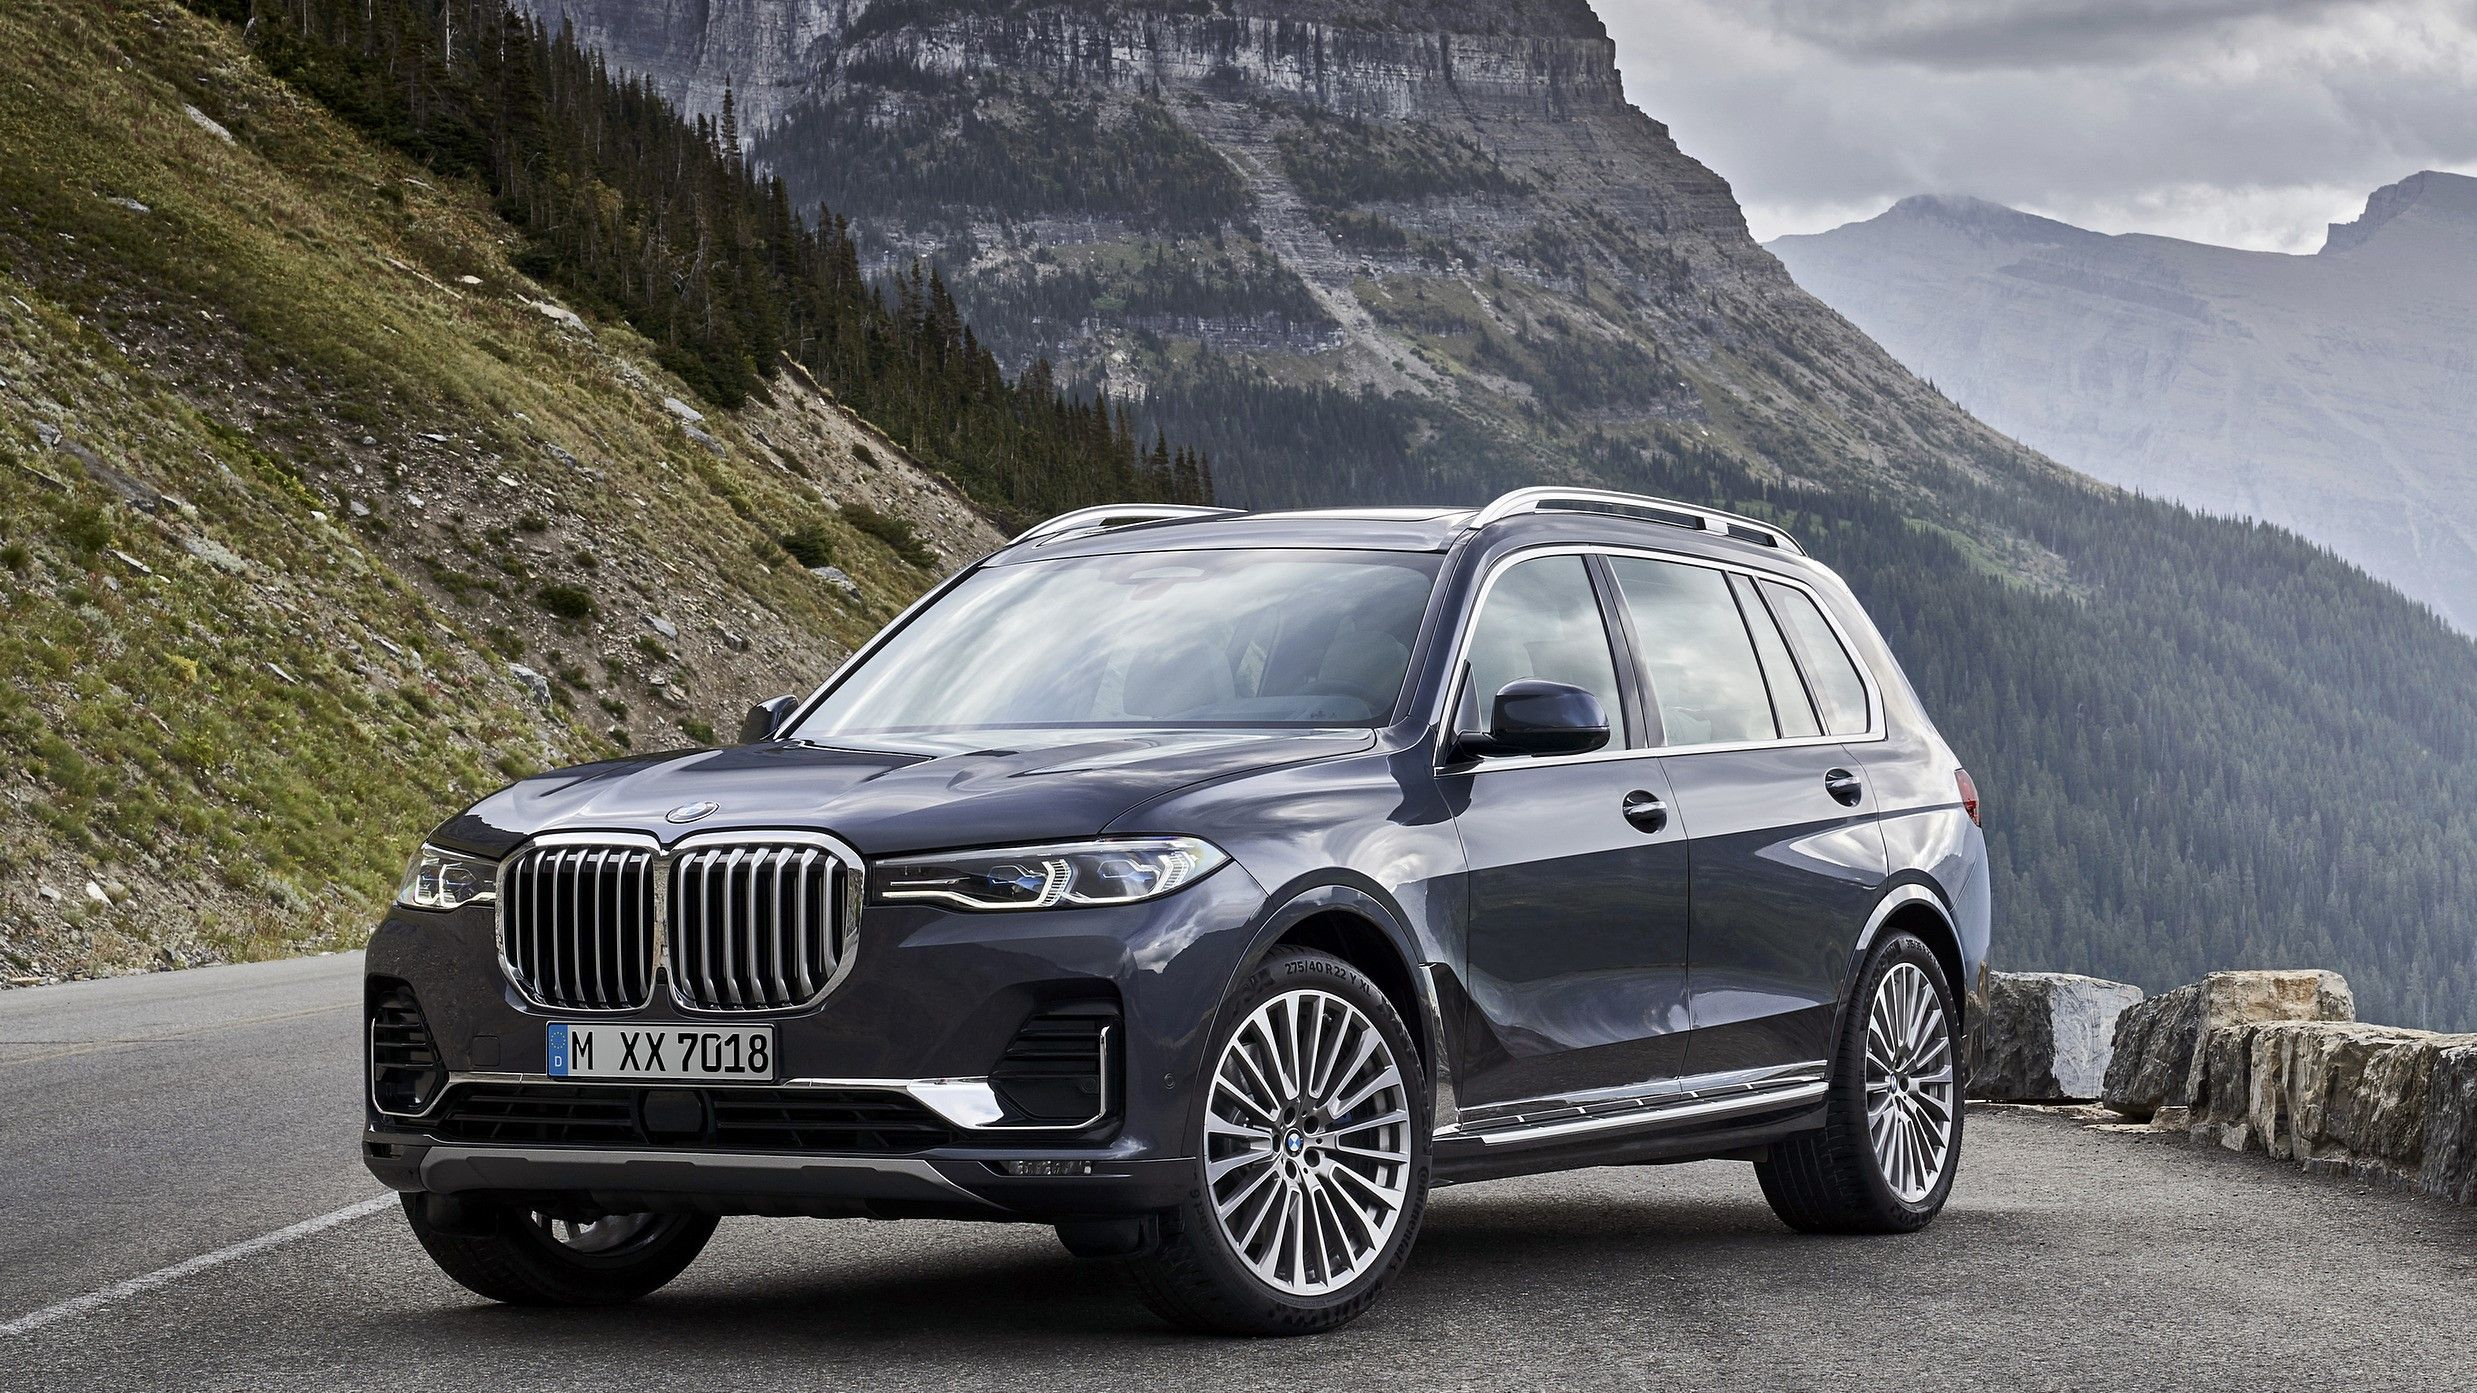 2021 BMW X7 Review - Prices, Trims, Performance, MPG and ...